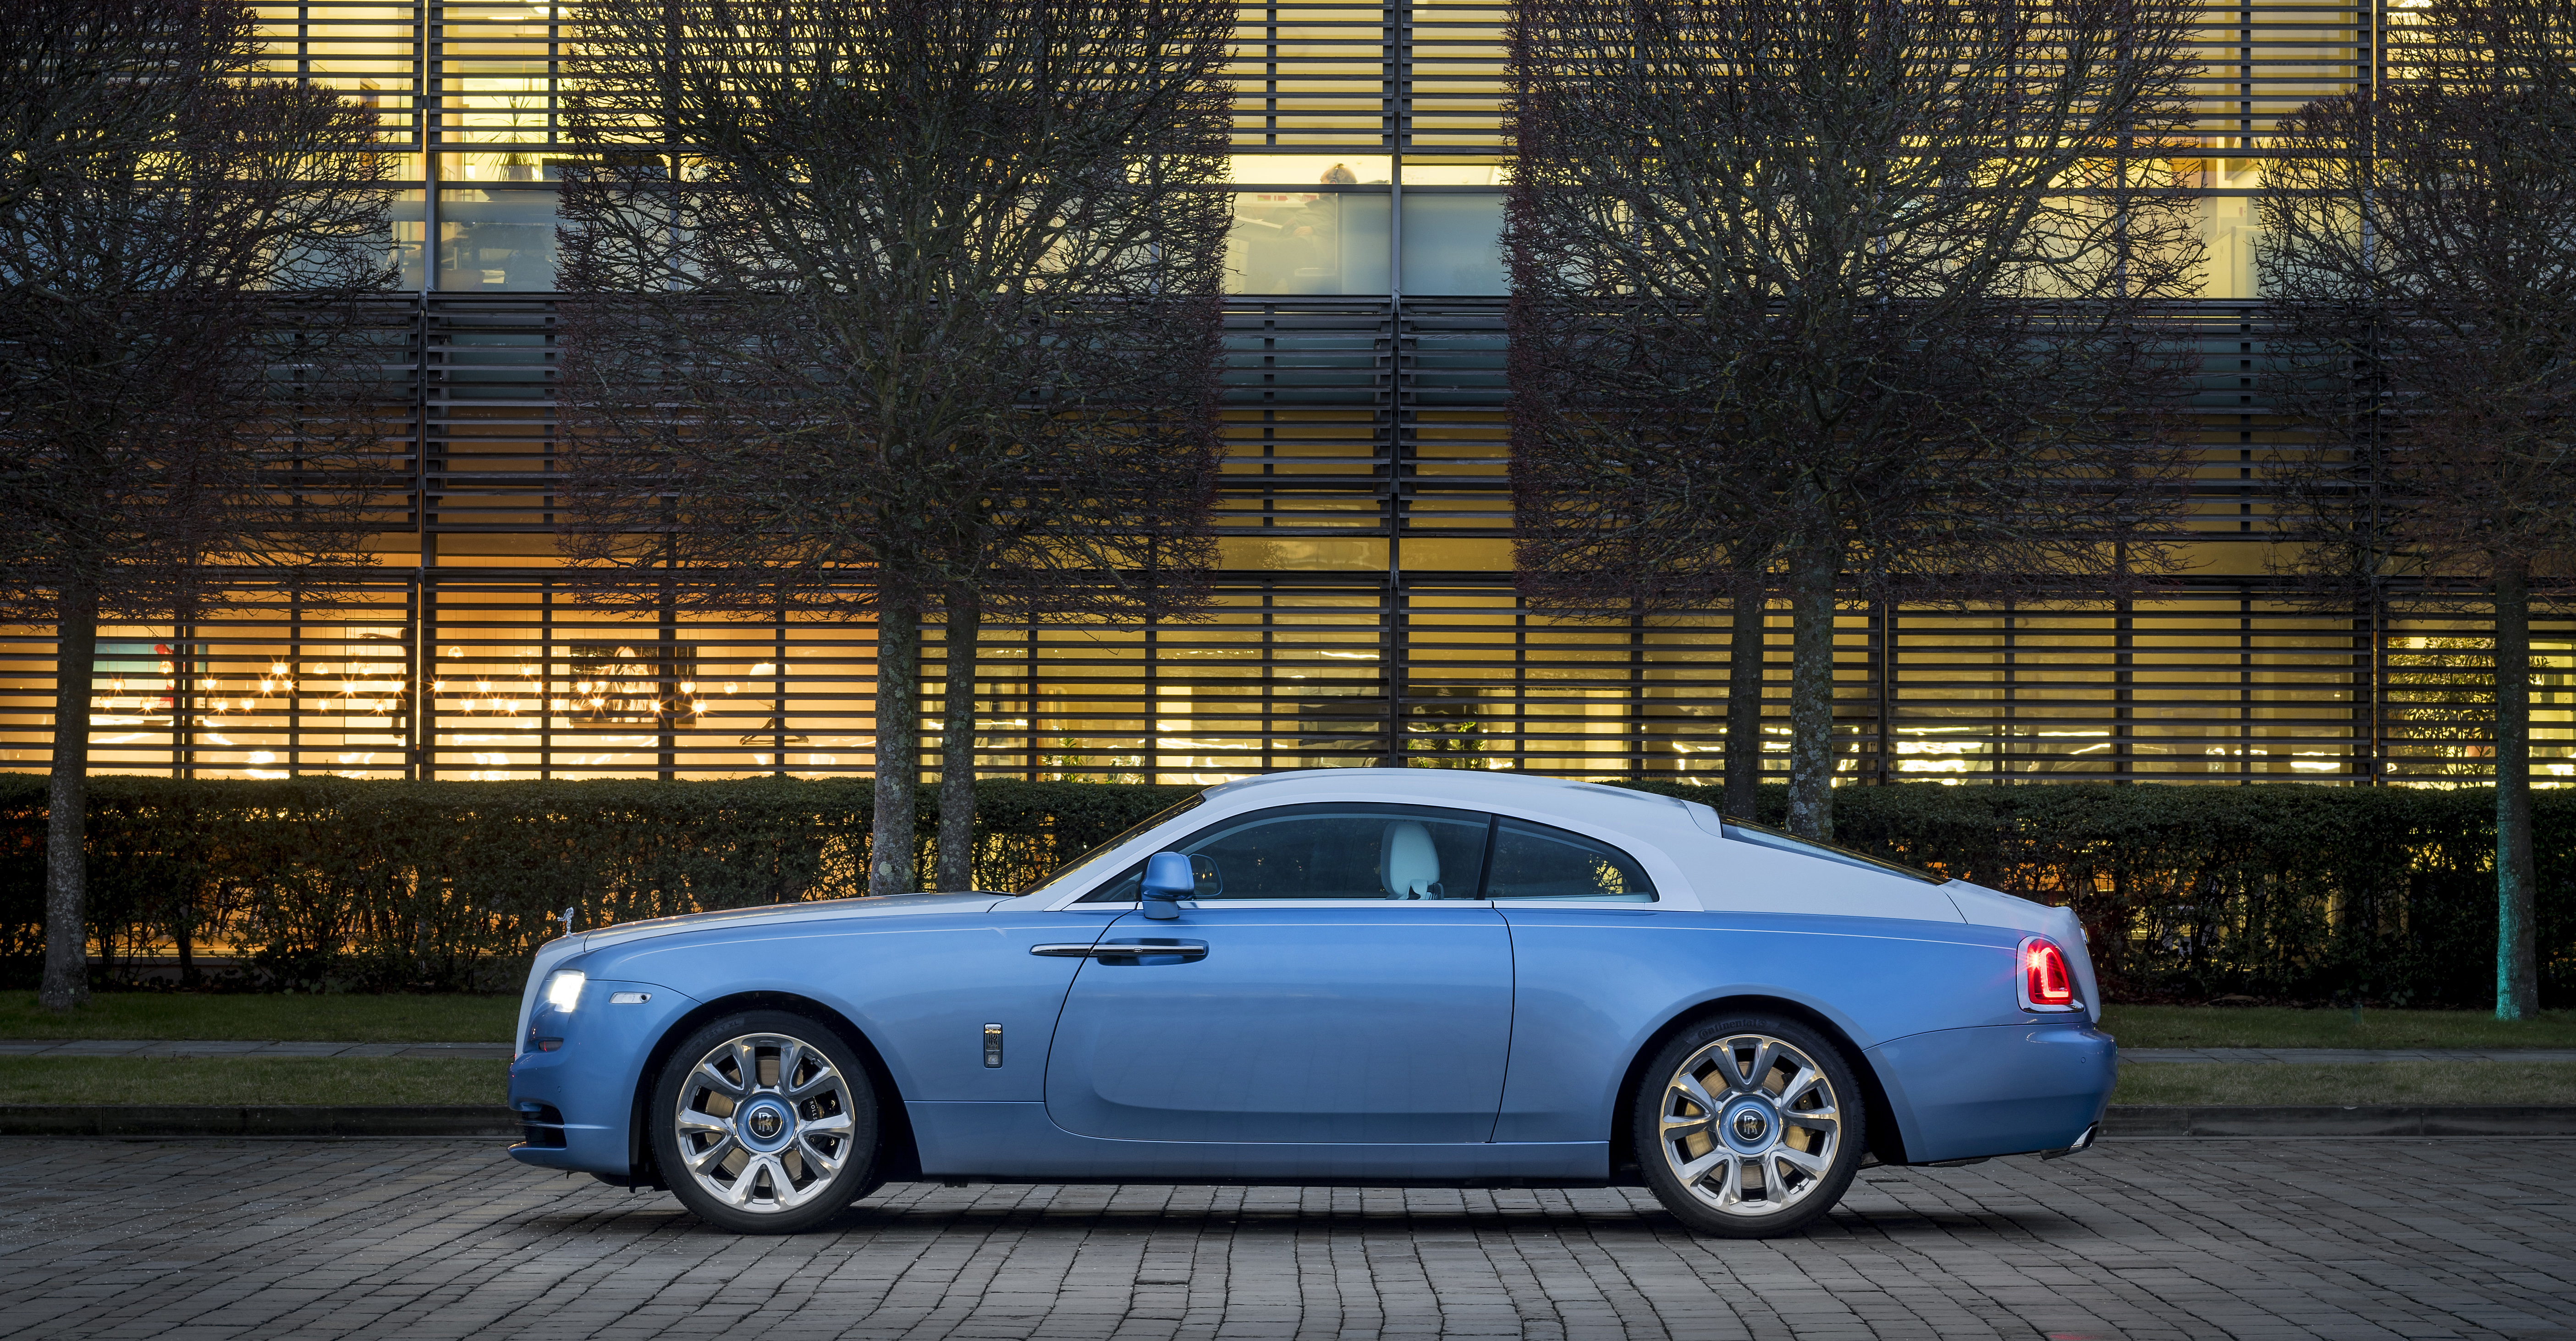 Falcon Wraith Features Most Detailed Rolls-Royce Embroidery Ever